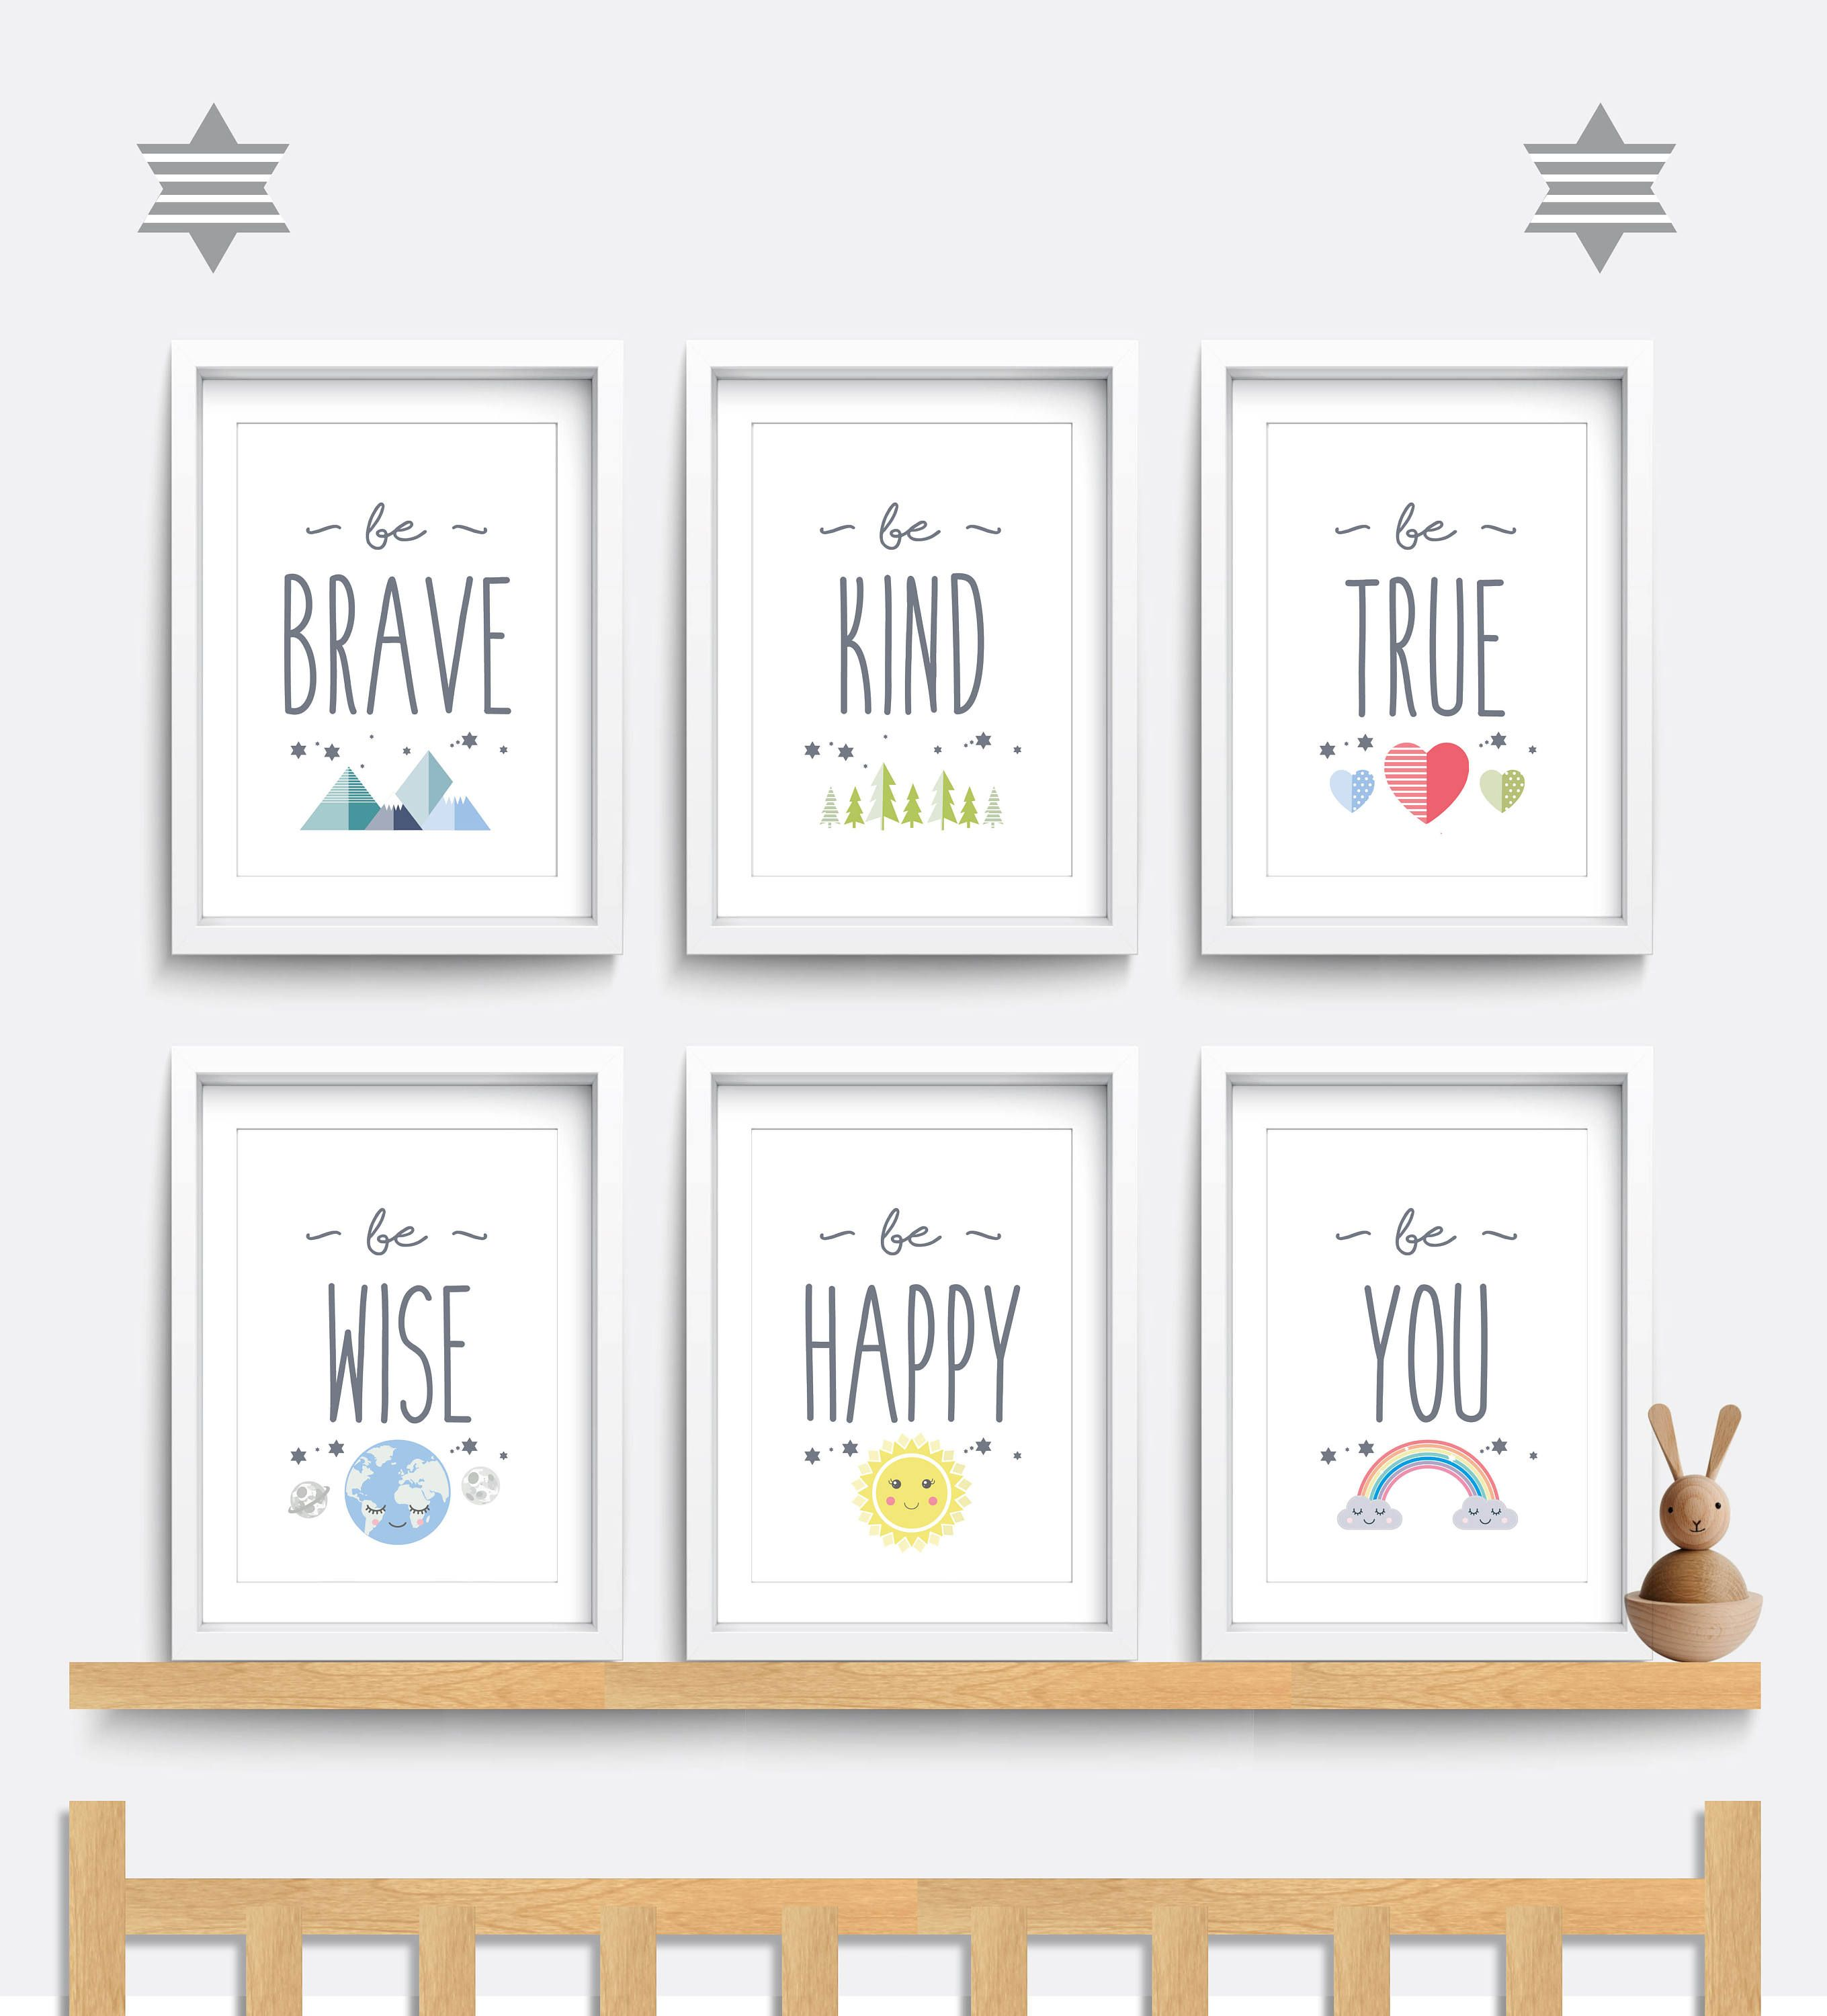 Children Motivation Quotes Children Inspire Design Love You to the Moon and Back Childrens Wall Art Print 11x14 Nursery Decor Kid/'s Room Decor Gender Neutral Decor Kid/'s Wall Art Print